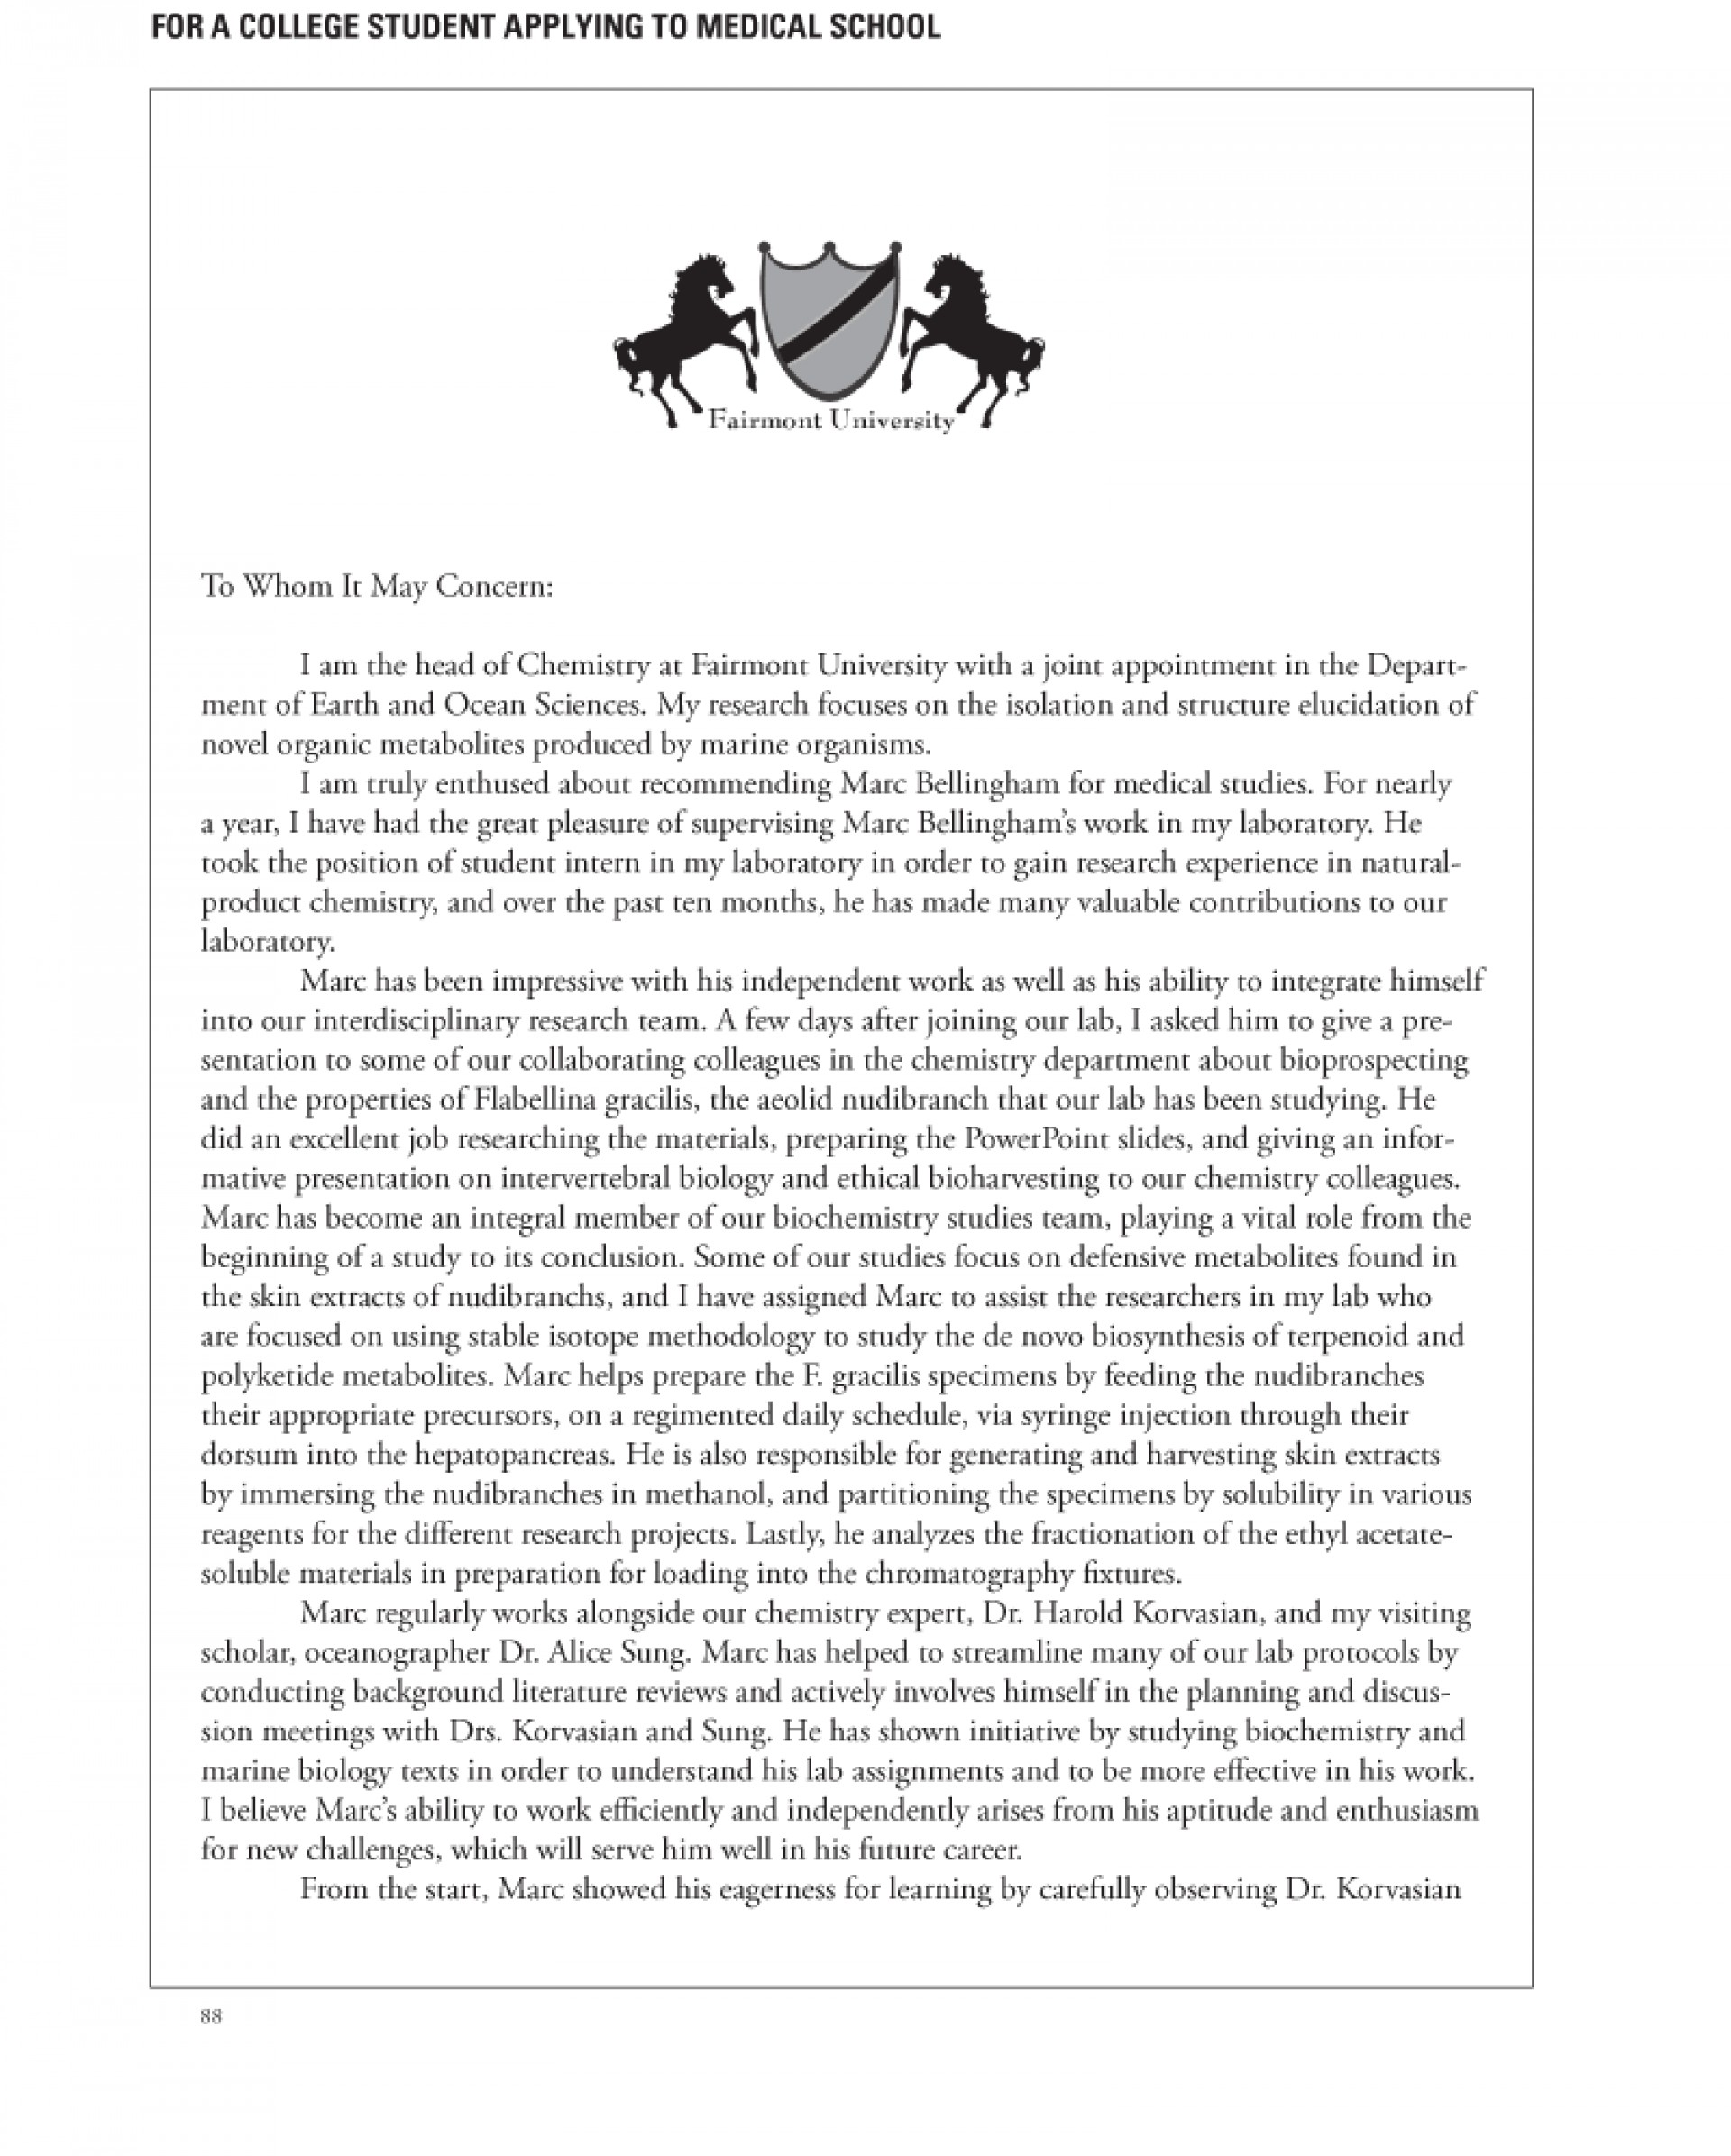 017 Satire Essays Letter Of Recommendation Sample 1resize8002c997 Essay Fearsome About High School Examples On Gun Control 1920